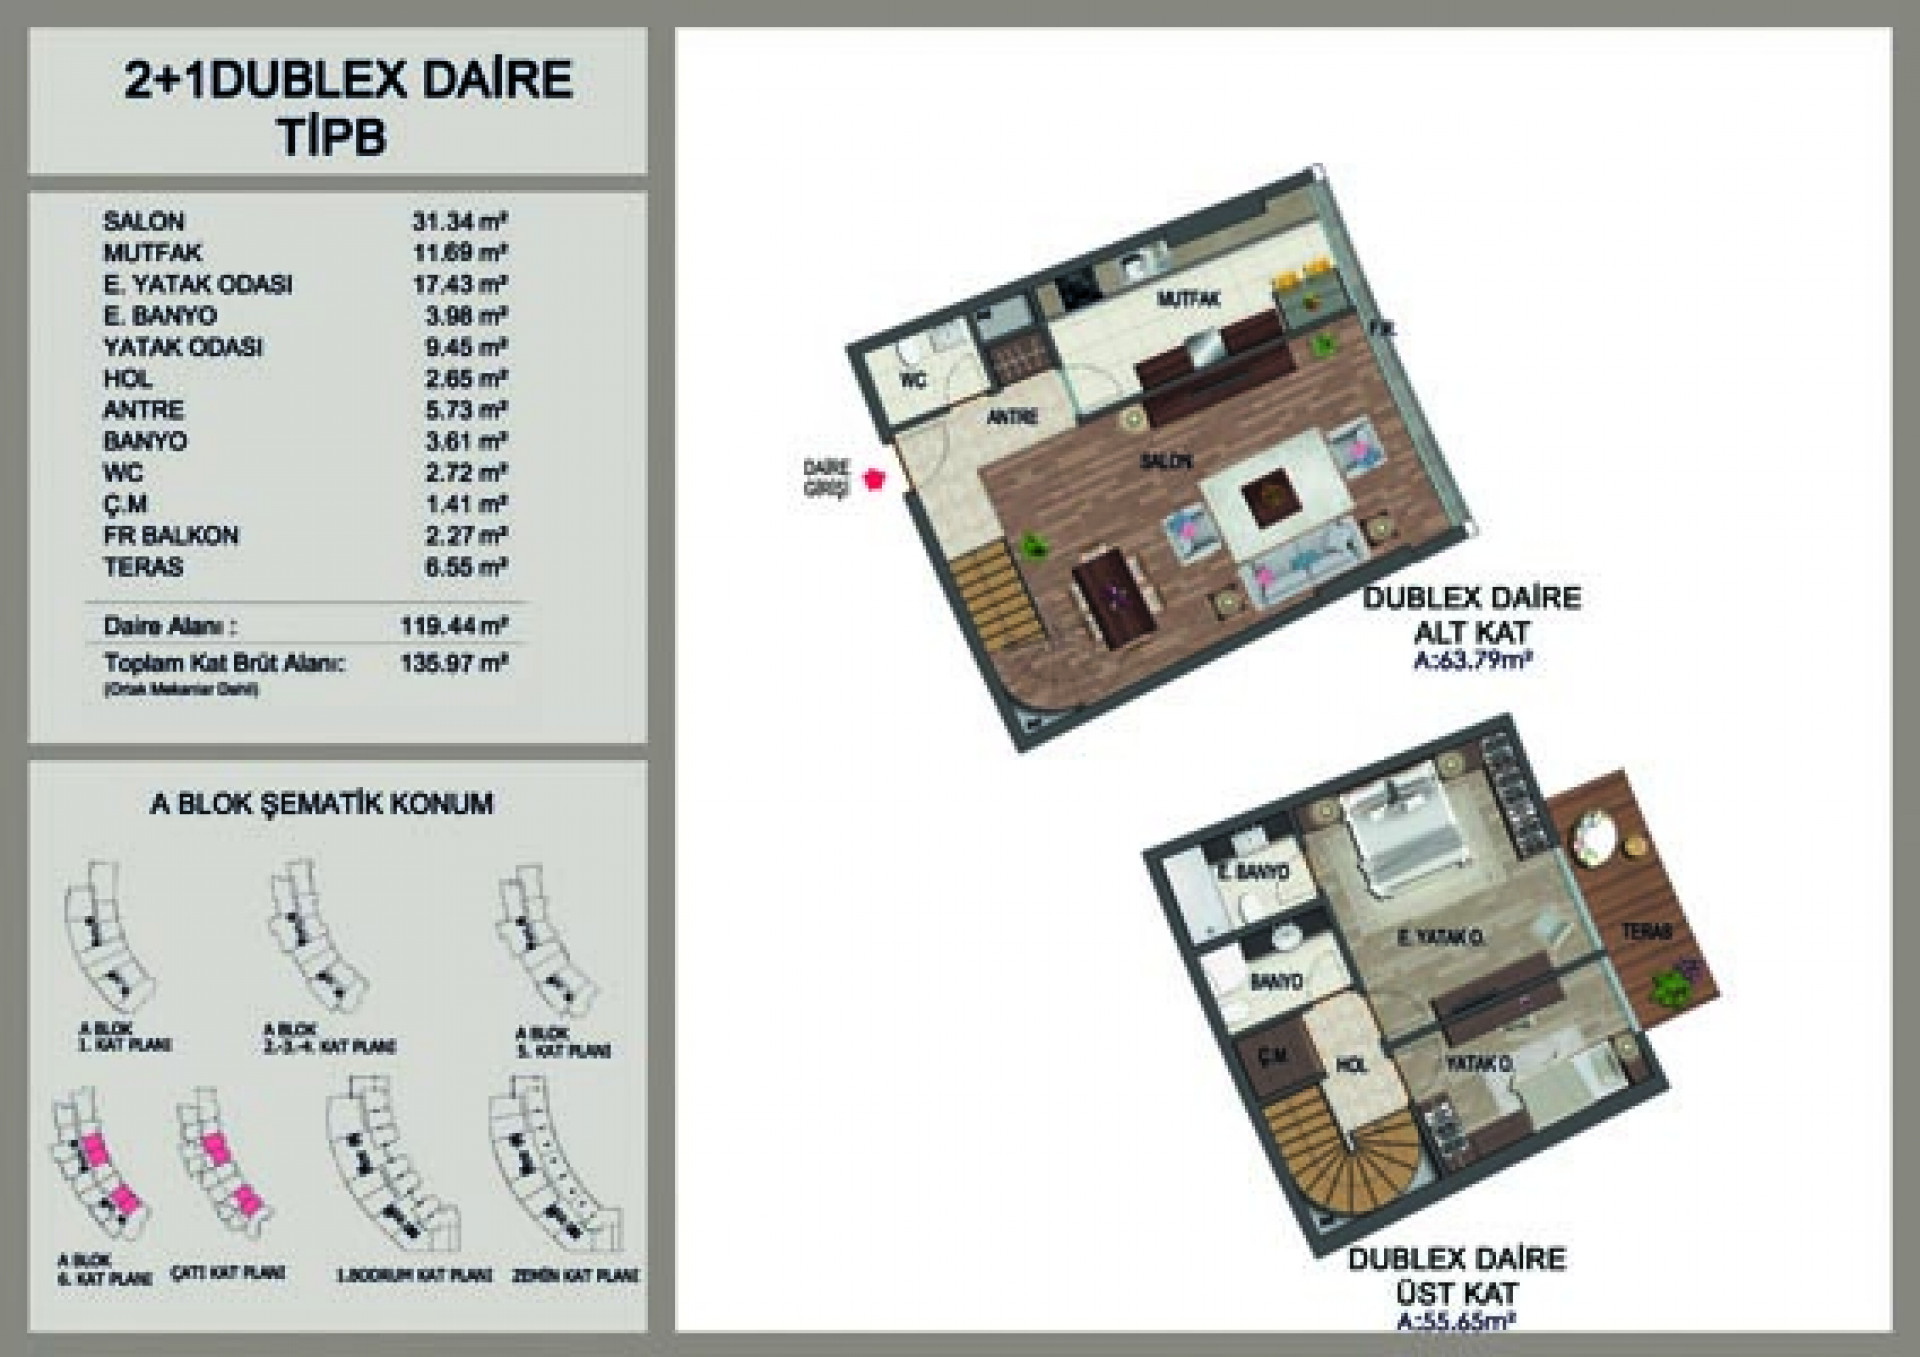 Apartment duplex 2+1